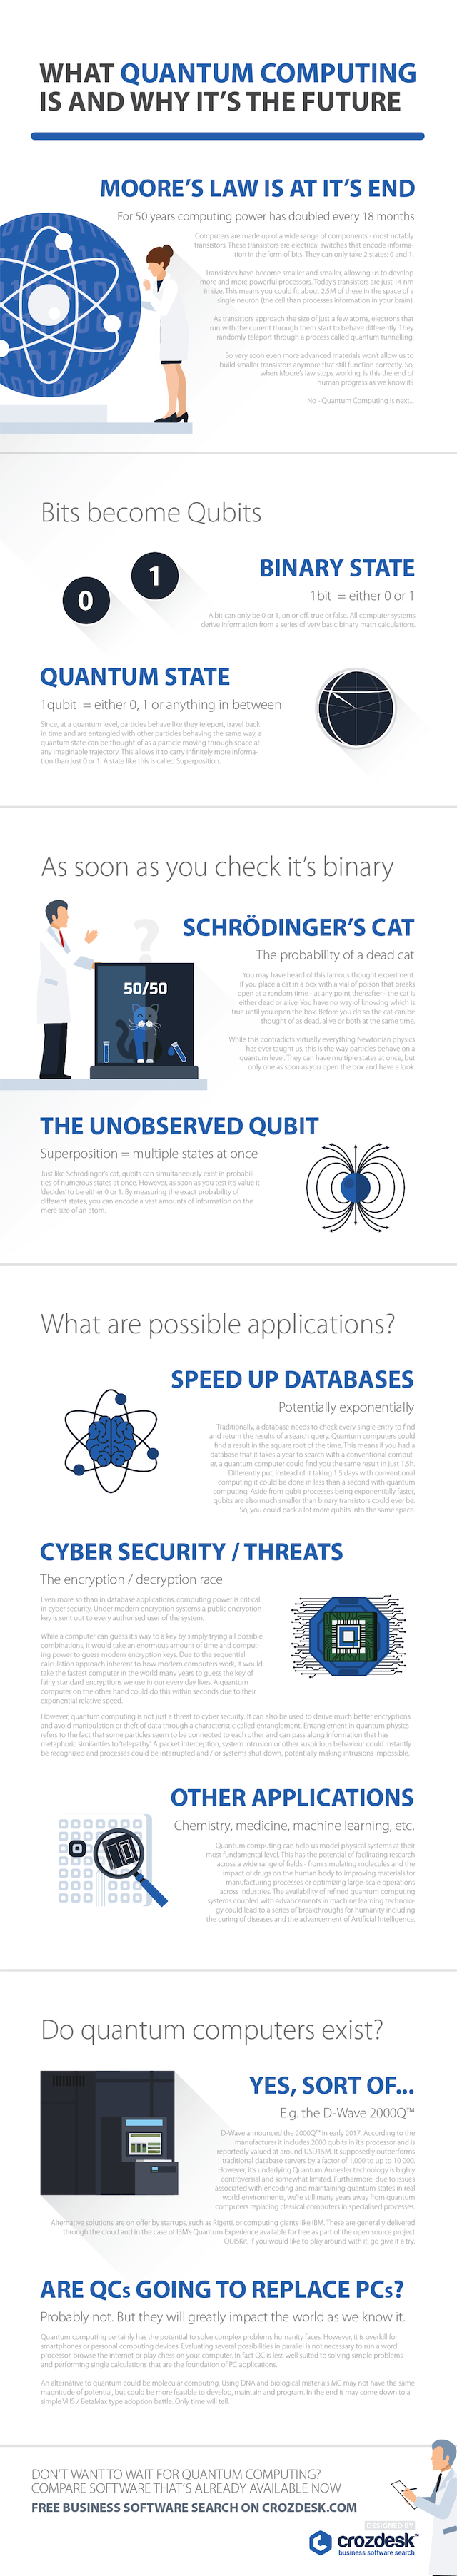 What Quantum Computing Is and Why It Is The Future [Infographic]